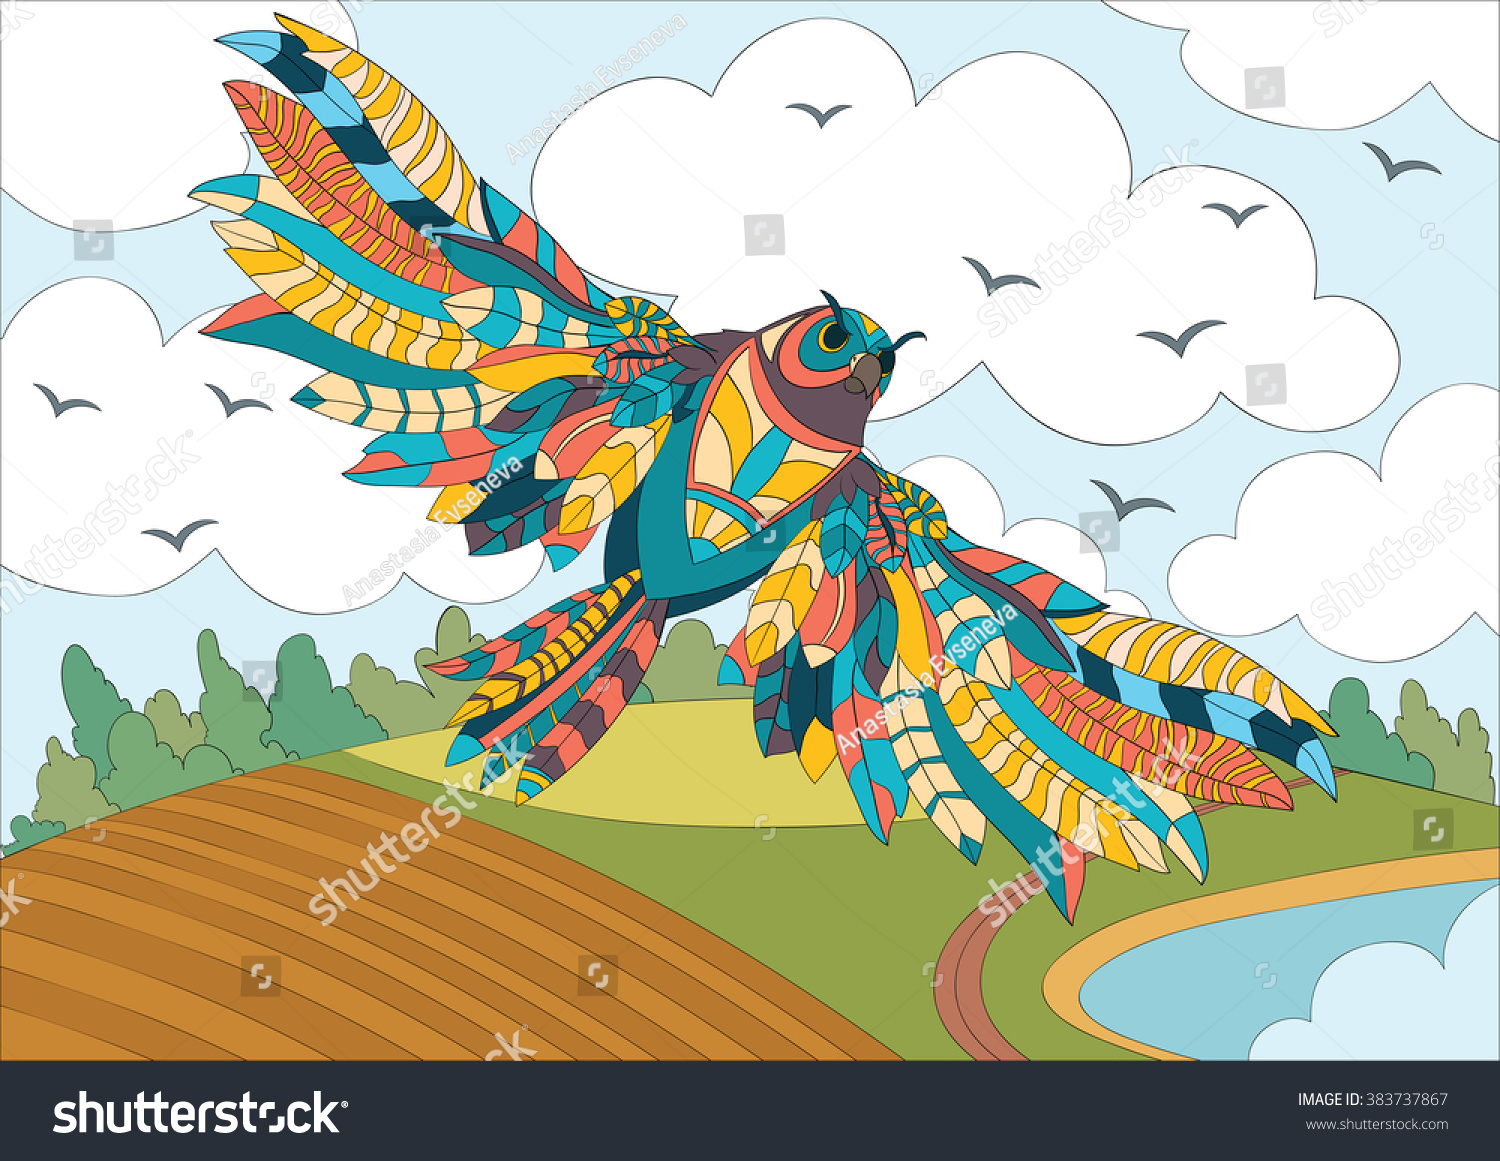 Art color therapy - A4 Vector Colorful Zentangle Stylized Abstract Wise Owl Fly And Flora Art And Color Therapy